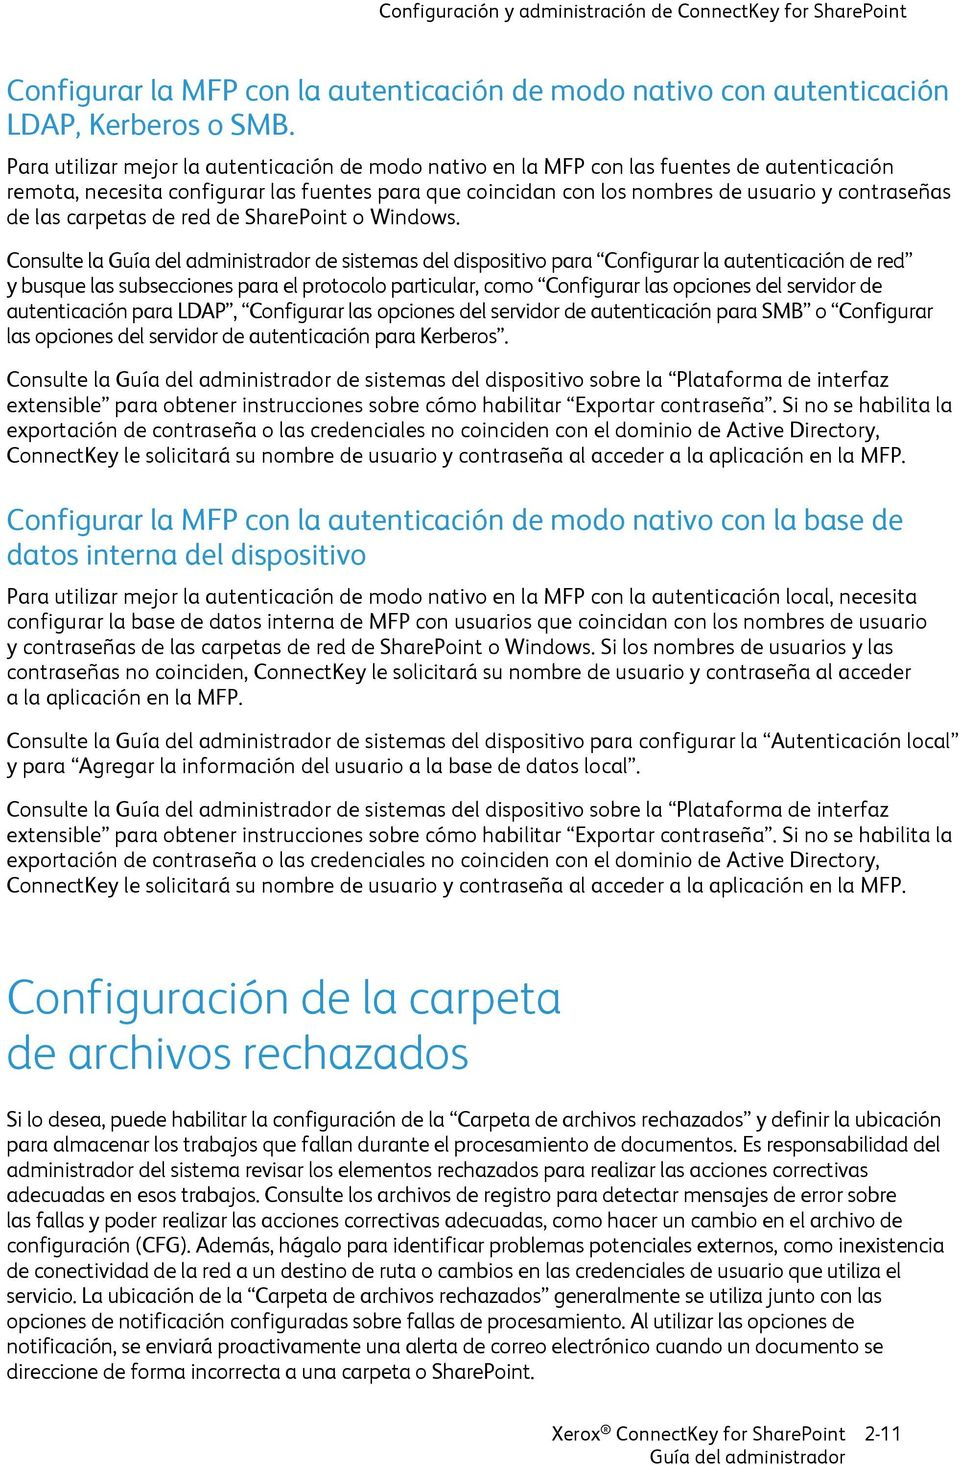 las carpetas de red de SharePoint o Windows.